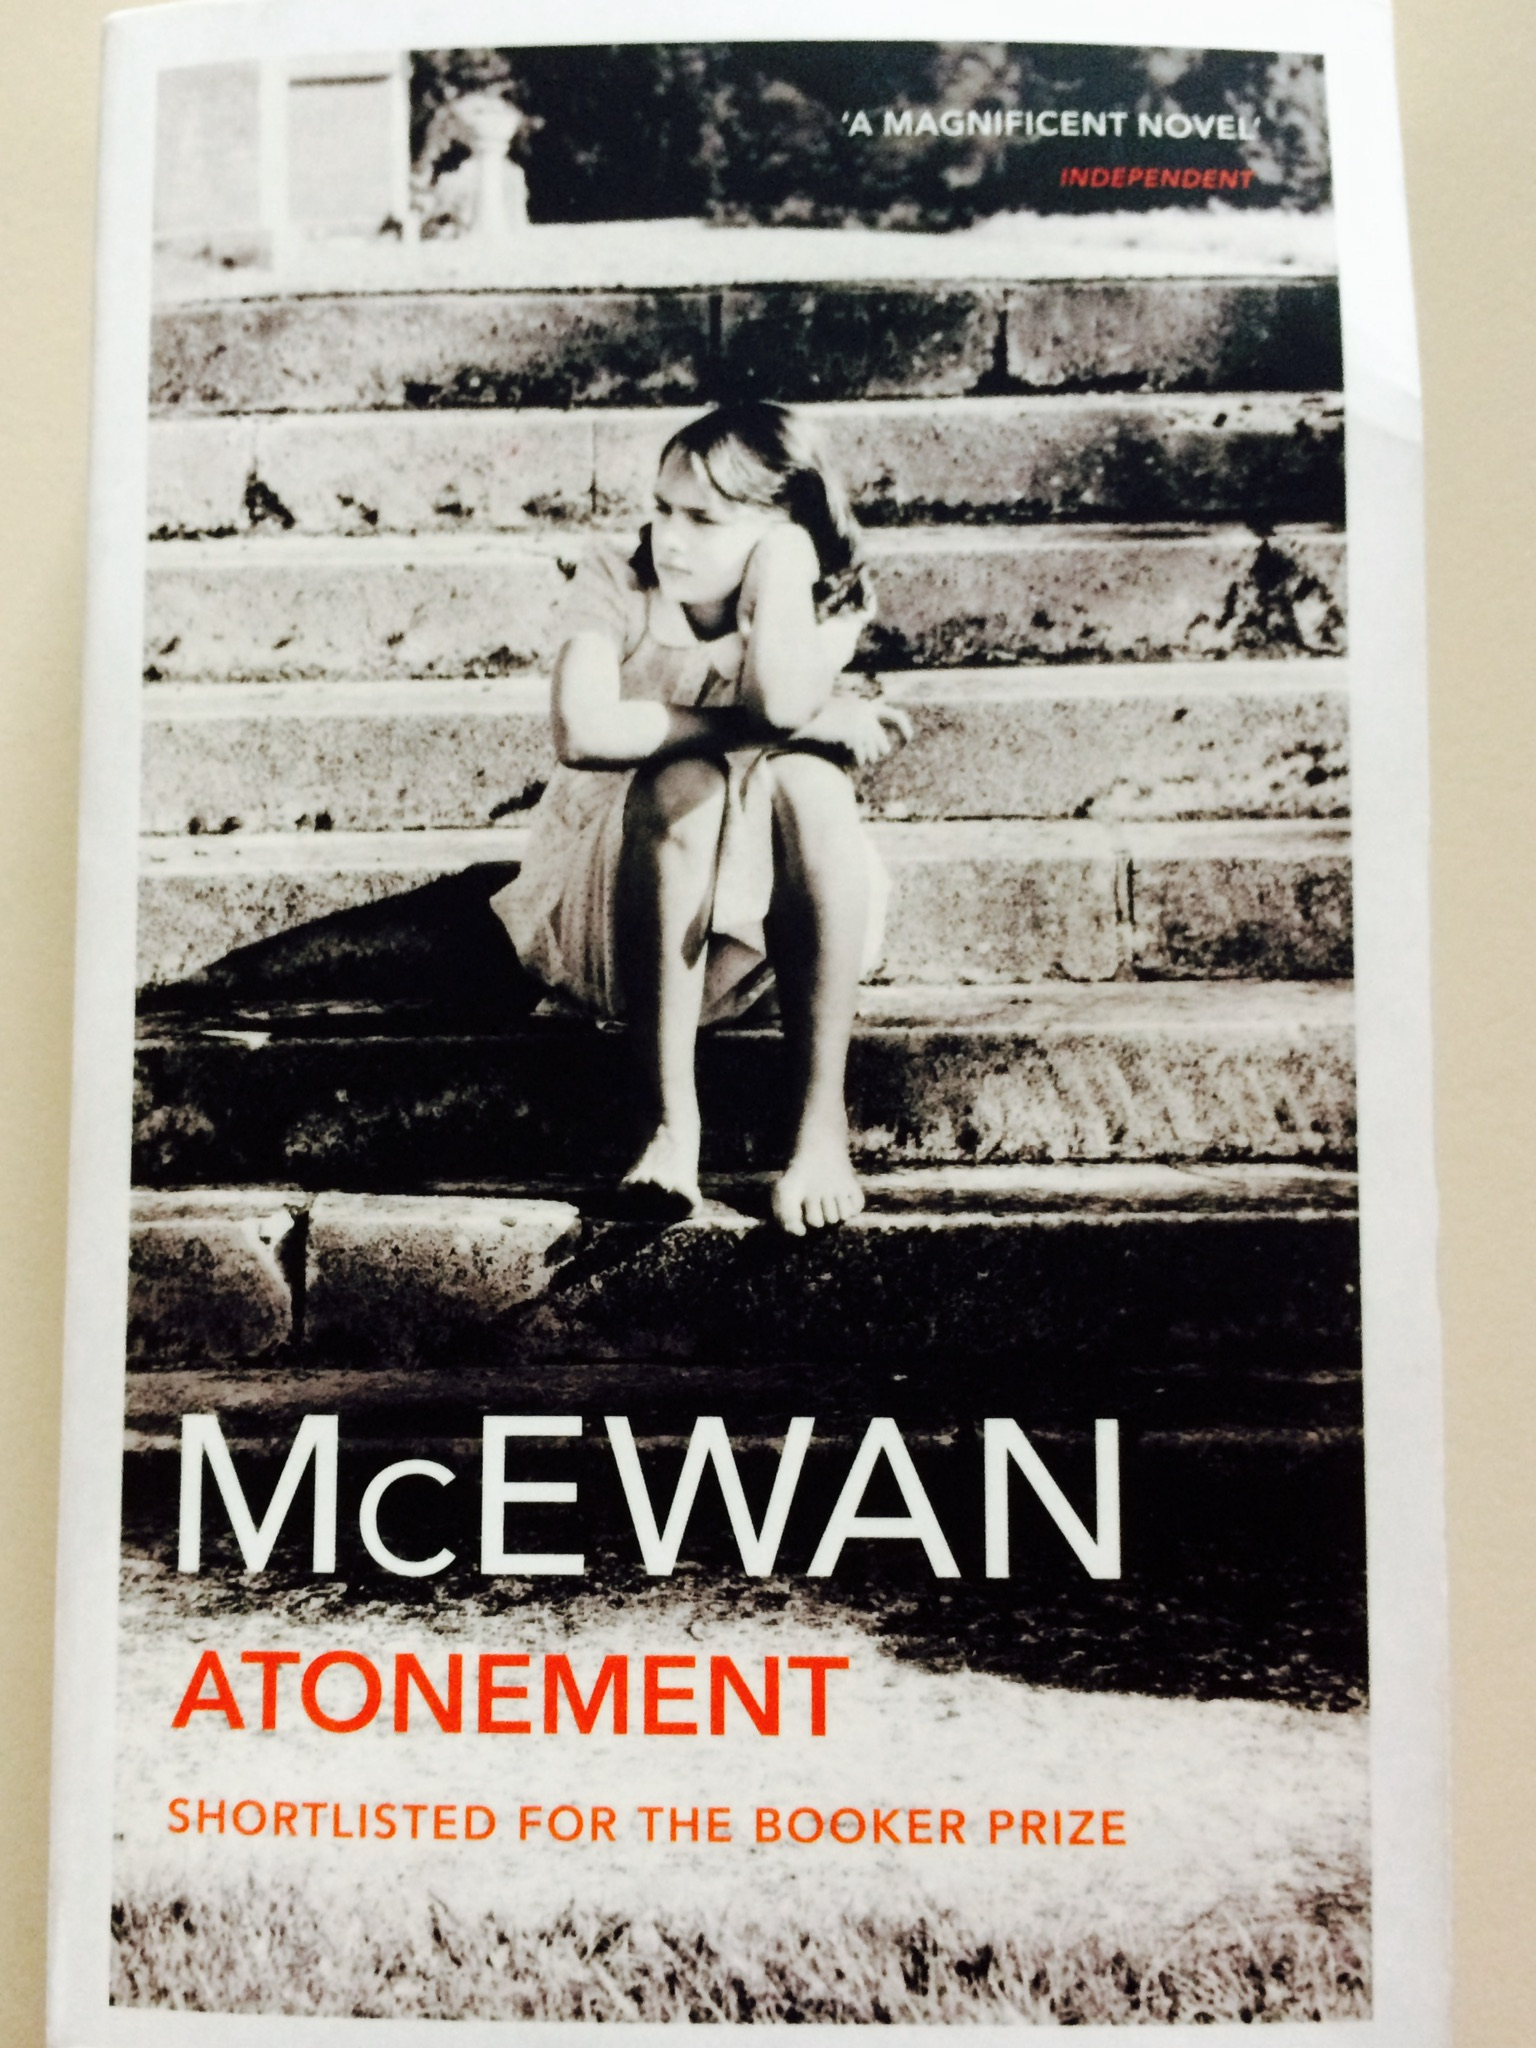 essays on atonement by ian mcewan The experimental techniques in ian mcewan's atonement jie han, pei wang foreign language department, baoding university, baoding, china showing the way of atonement mcewan employs the third-person narrative form to describe the story of atonement from the first part to the j han, p wang.